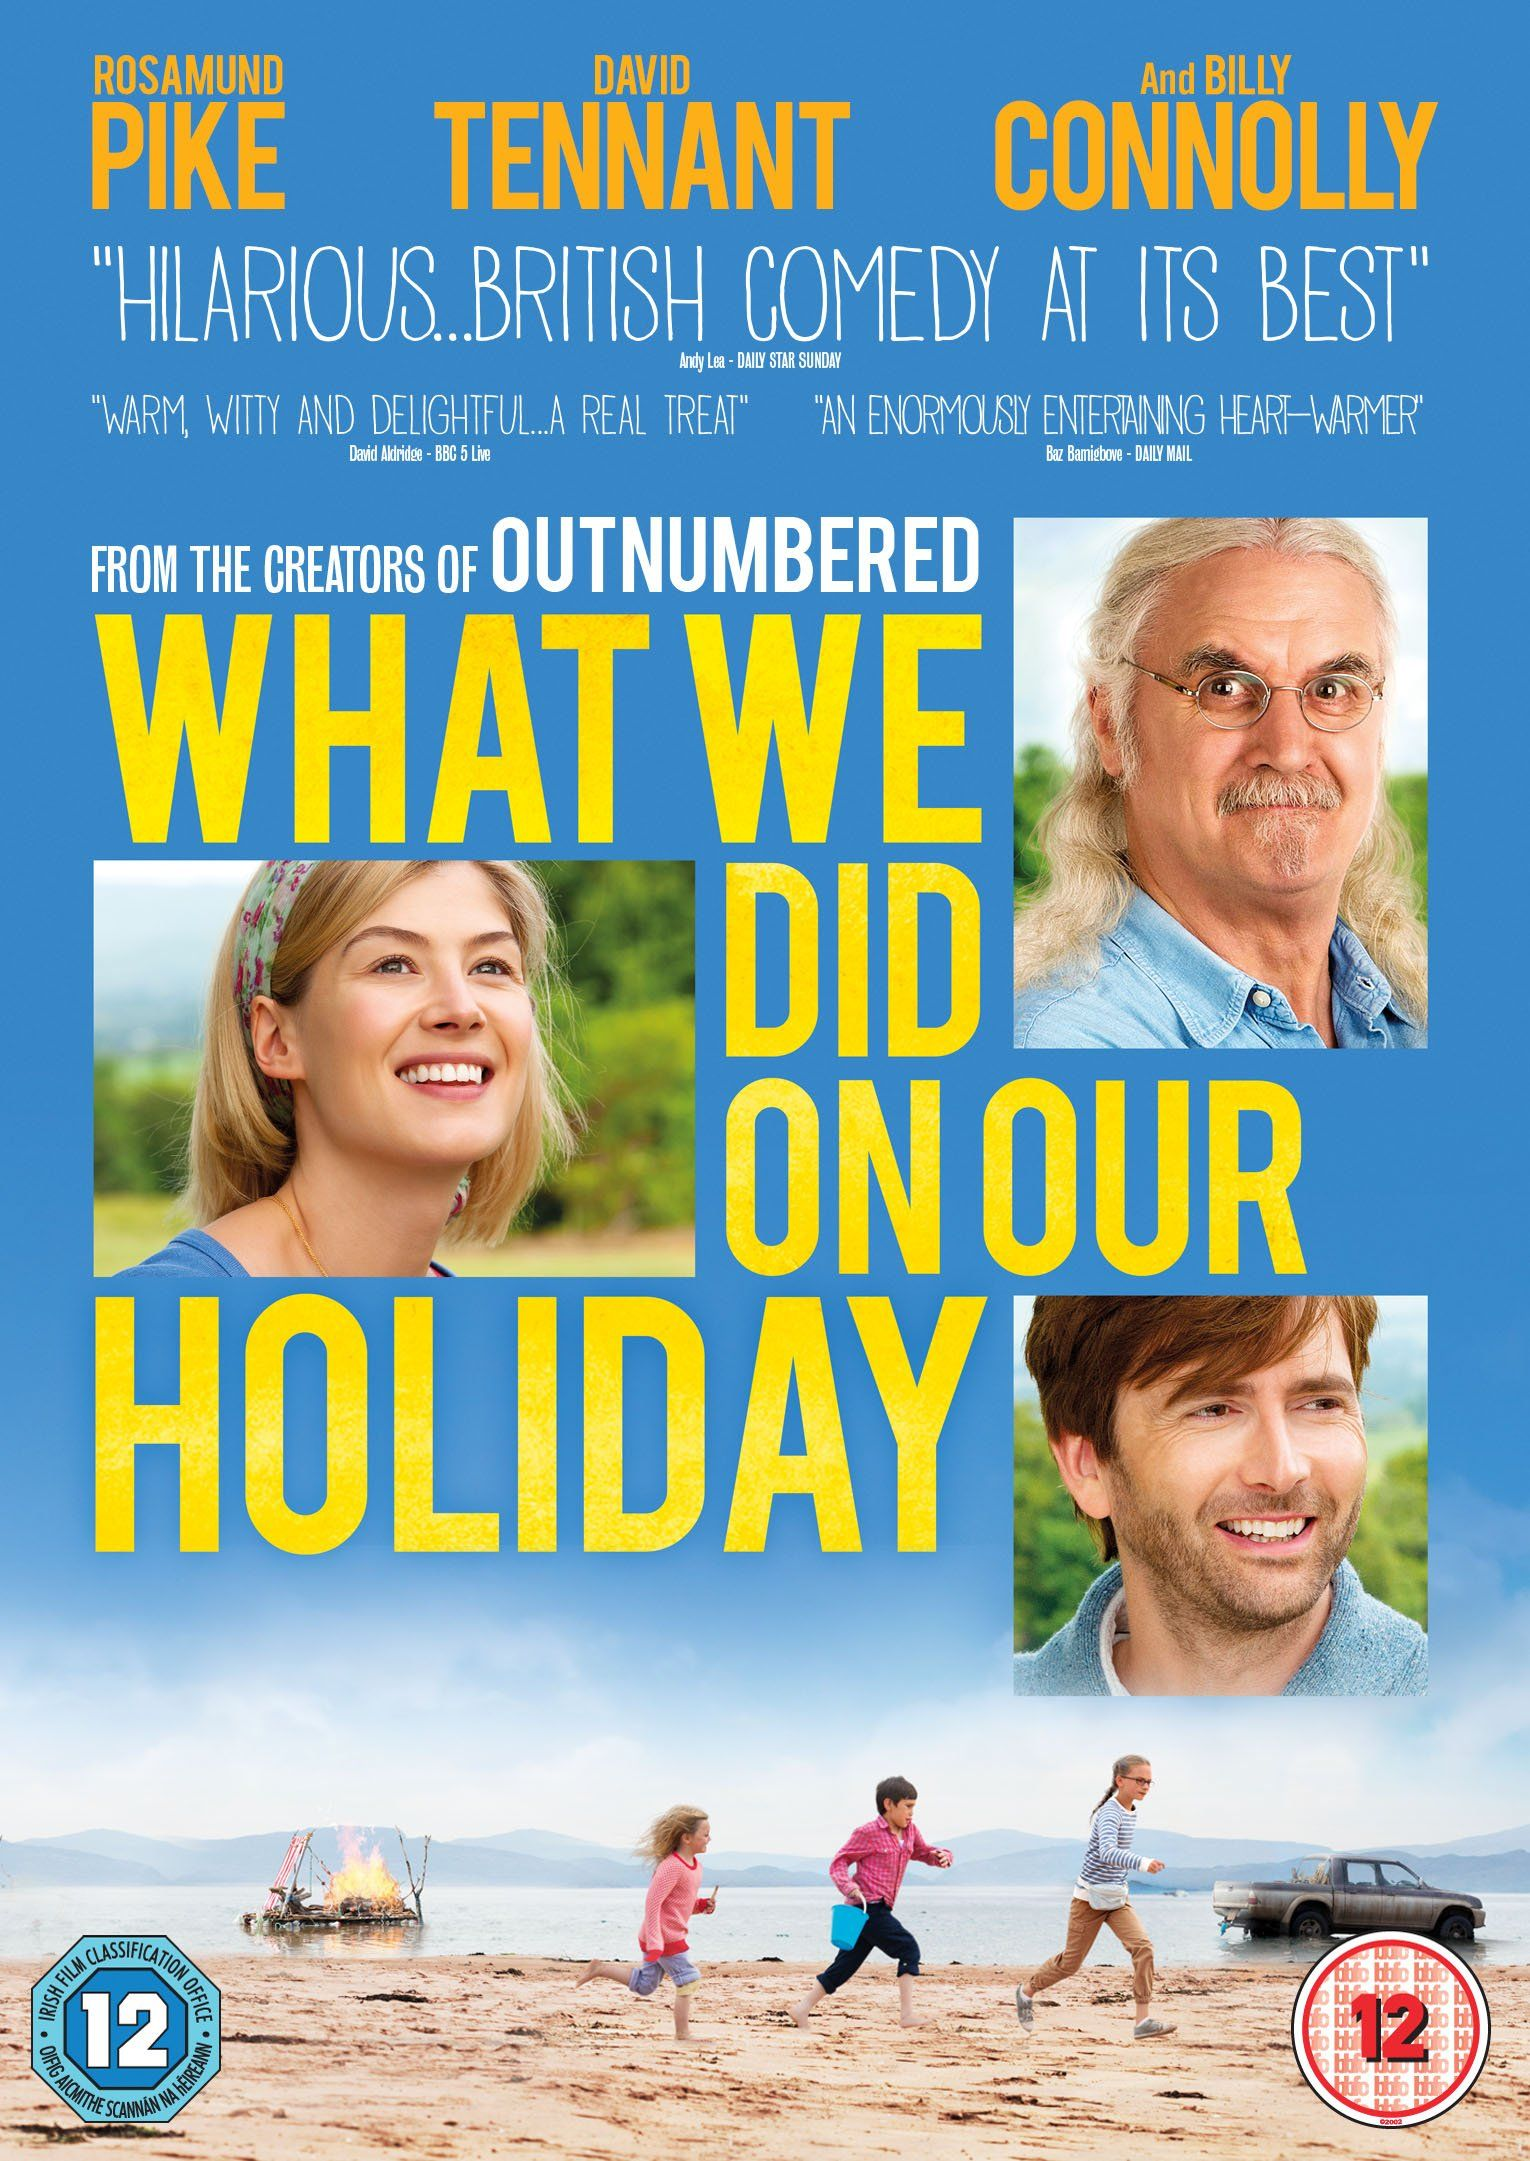 What We Did On Our Holiday Dvd Amazon Co Uk Rosamund Pike David Tennant Billy Connolly Celia Imrie B Hd Movies Streaming Movies Full Movies Online Free